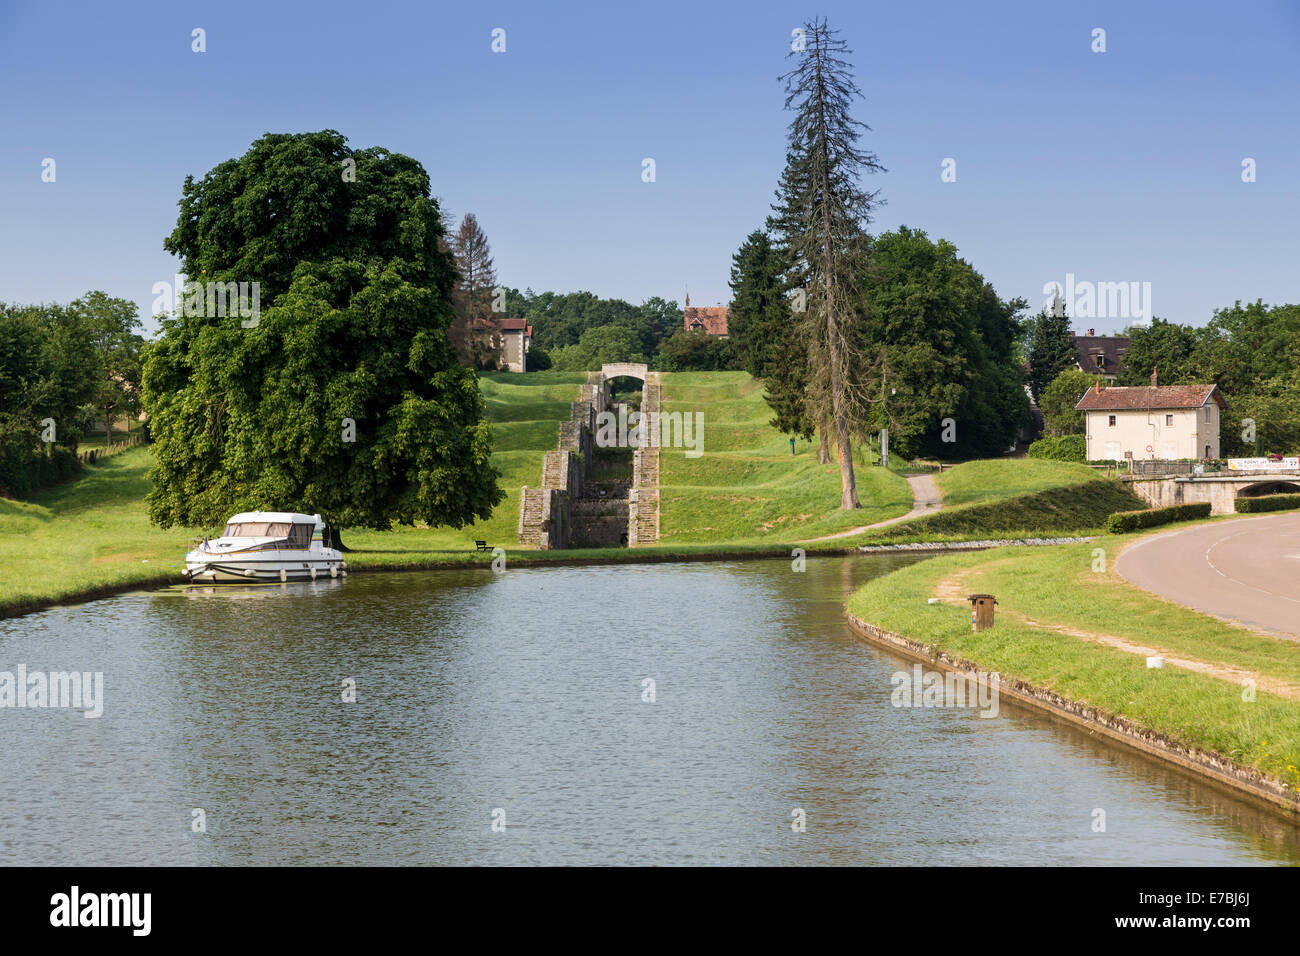 Rogny Les Sept Ecluses, The old staircase of seven locks of the Briare Canal France - Stock Image